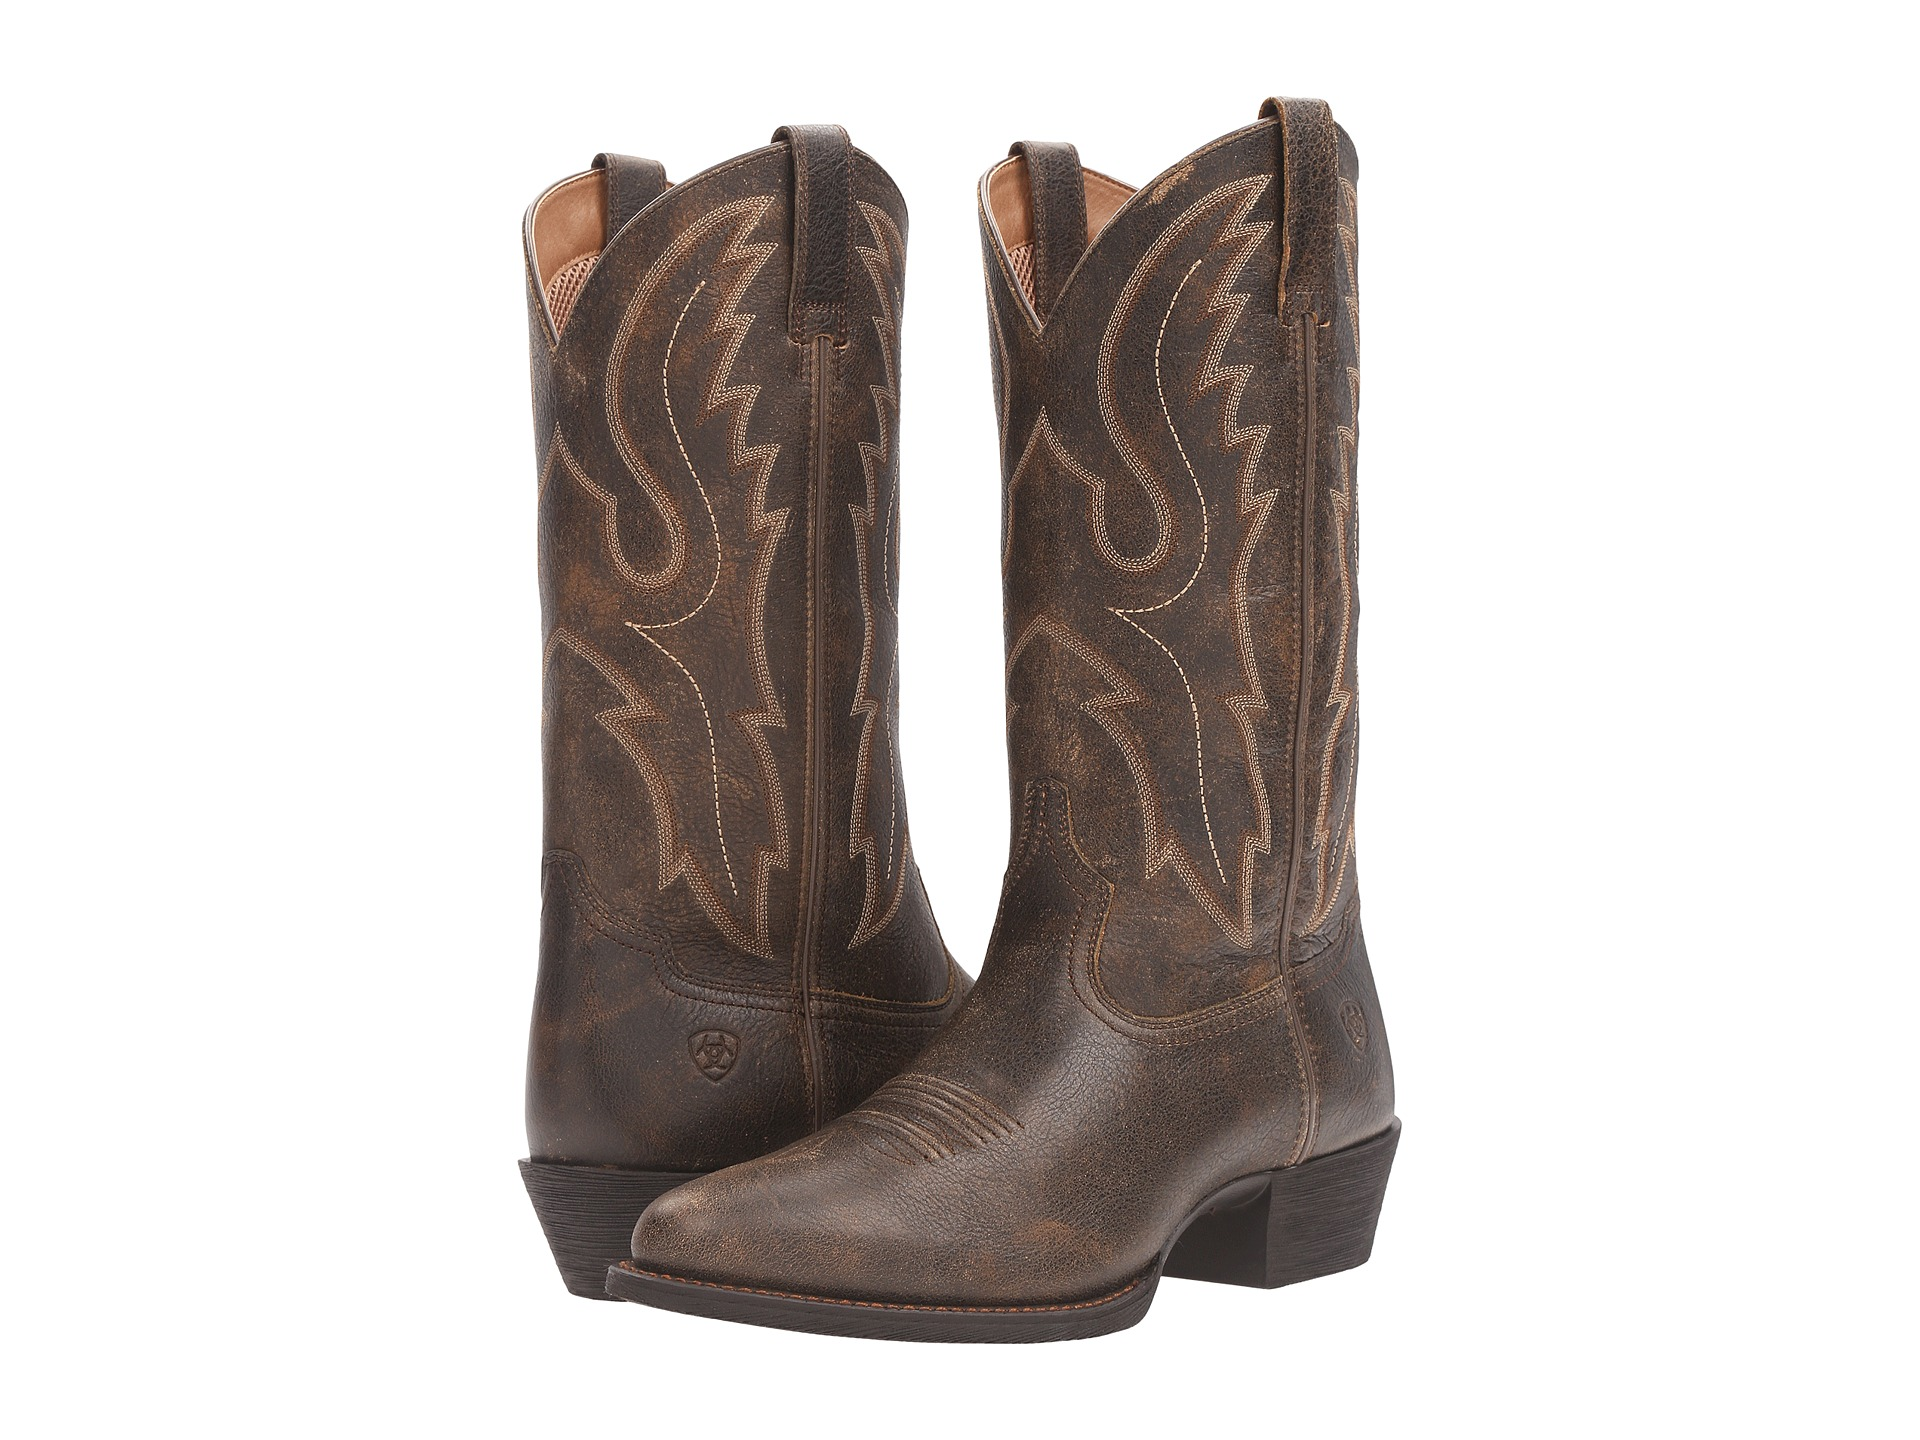 Ariat Boots Men | Shipped Free at Zappos